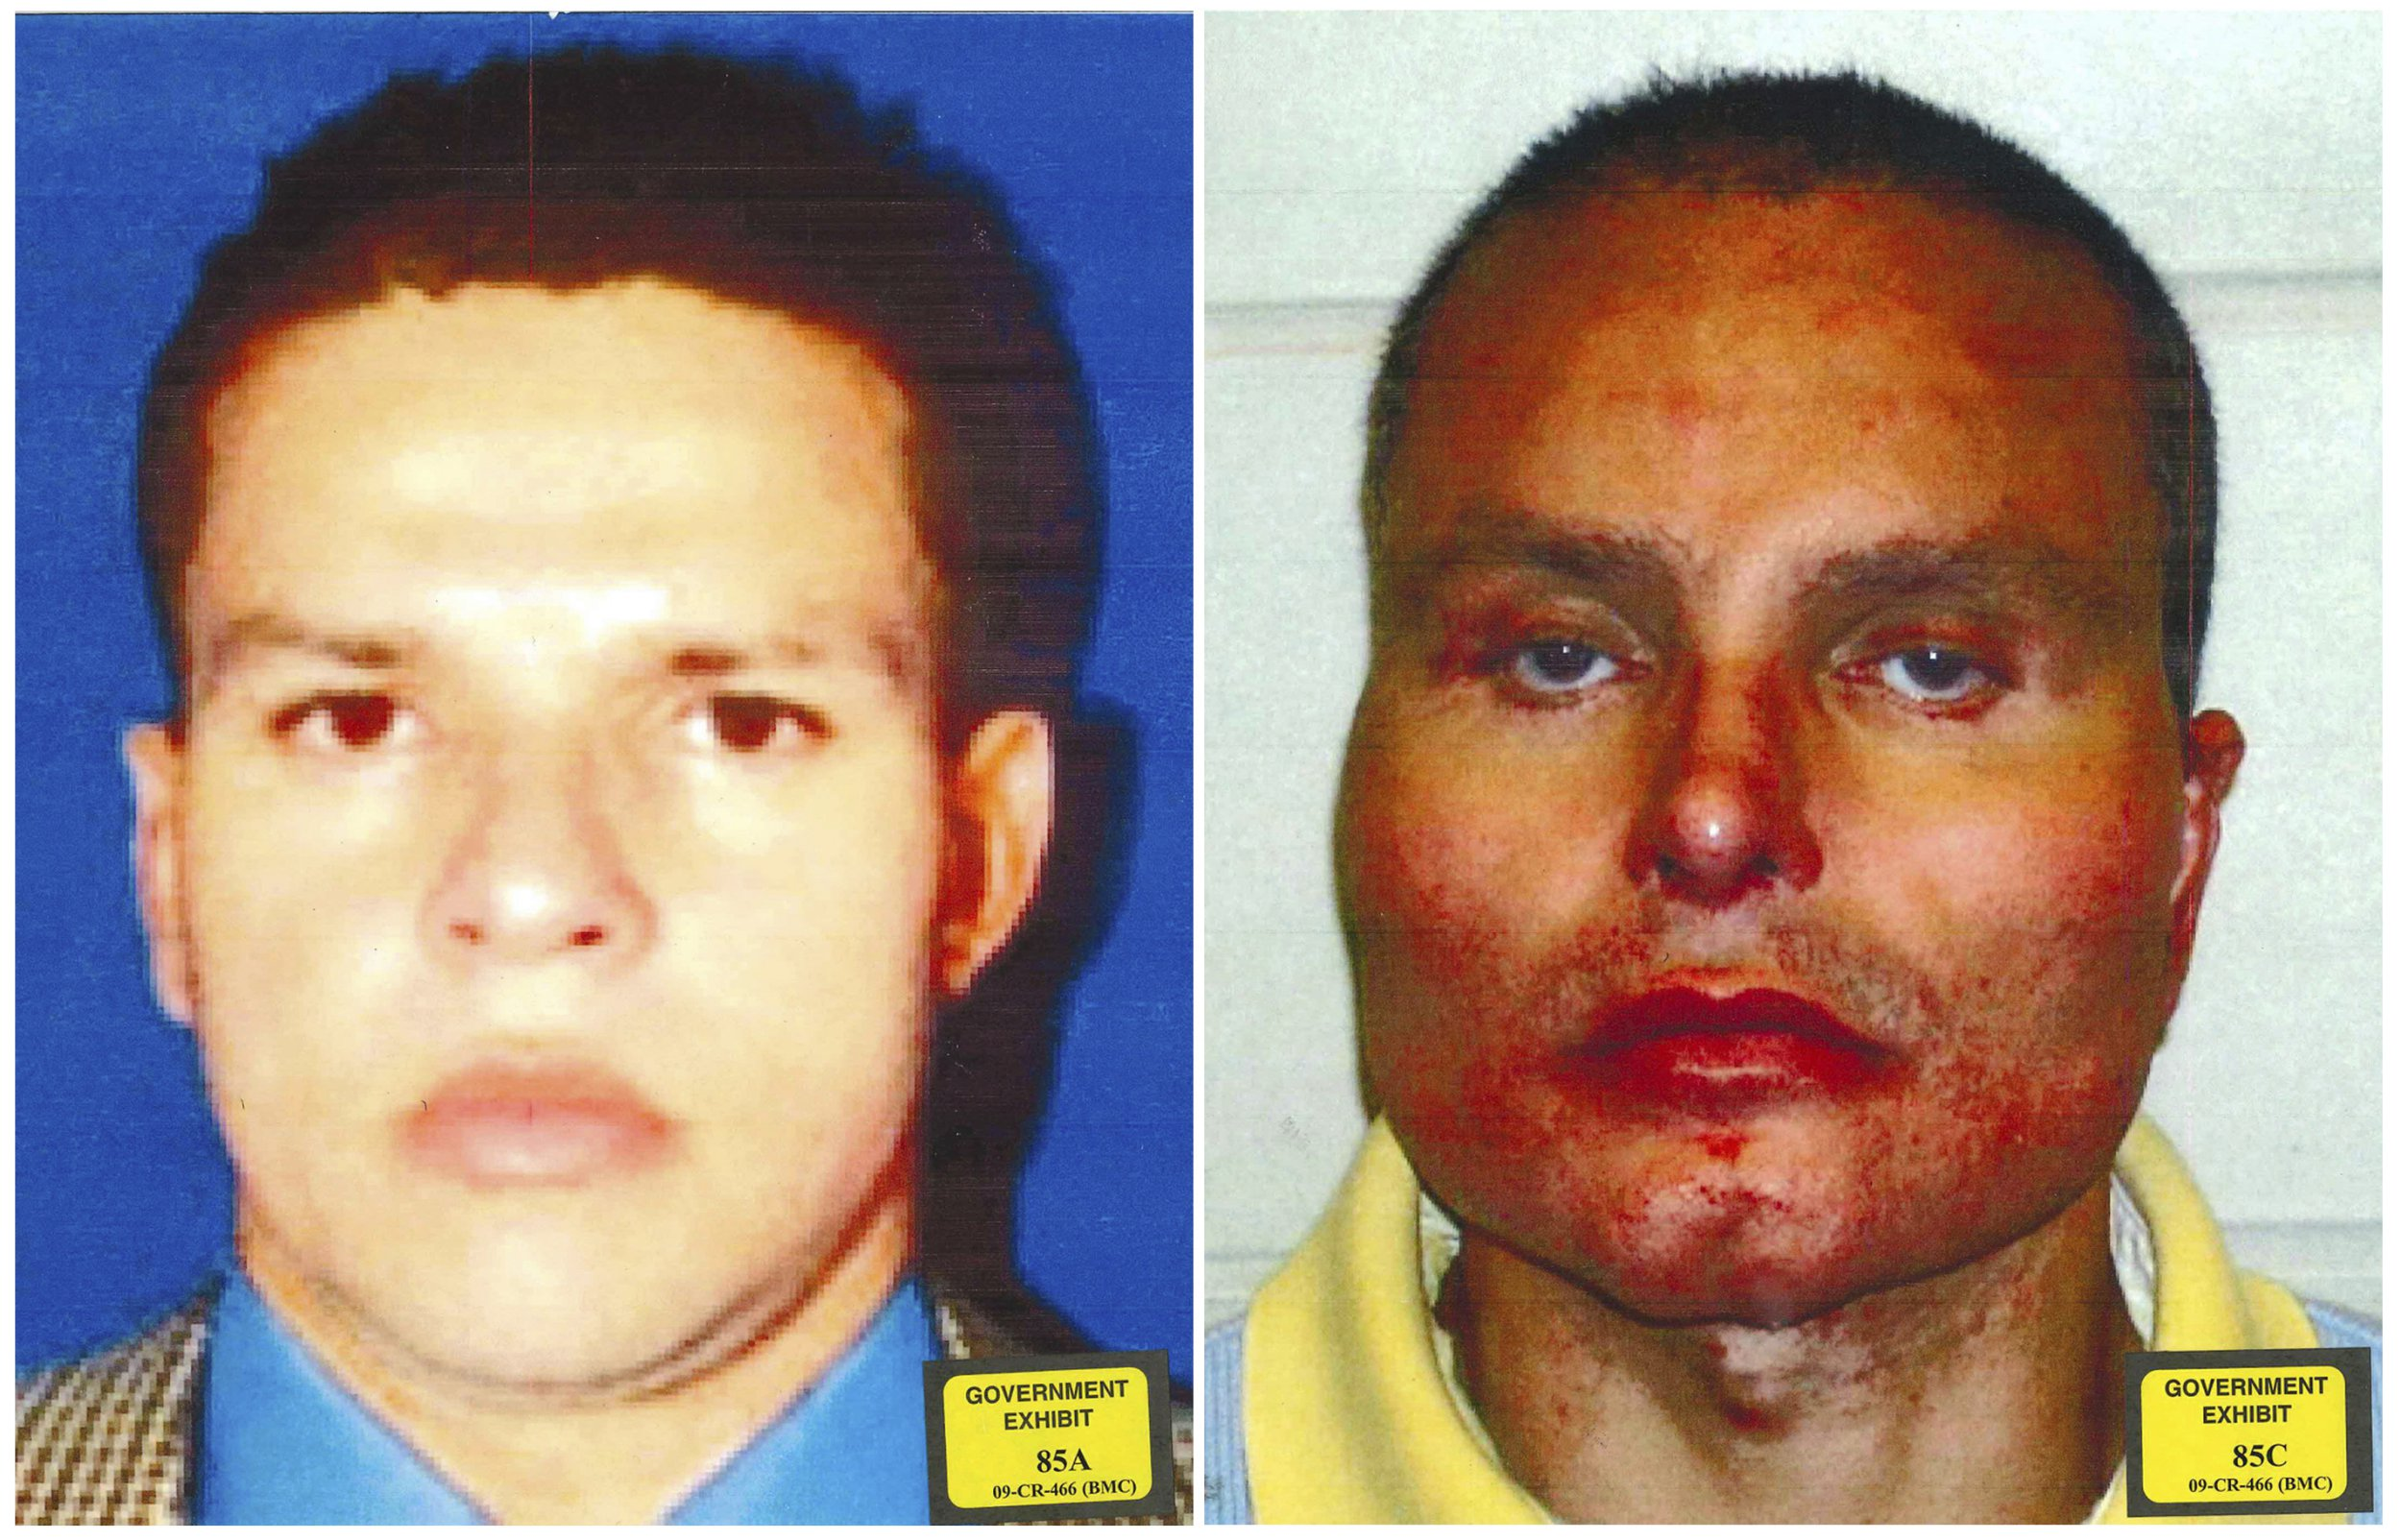 """This combination of undated photos provided by the U.S. Attorney's Office for the Southern District of New York shows former Colombian drug lord Juan Carlos Ramirez Abadia. The latest star witness for the government in the trial against accused drug lord Joaquin """"El Chapo"""" Guzman has been more notable for his appearance than his testimony. Ramirez Abadia told the jury that he had at least three surgeries to change his appearance. The photo at left shows Ramirez Abadia prior to his surgeries and the photo at right is post-surgery. (U.S. Attorney's Office for the Southern District of New York via AP)"""